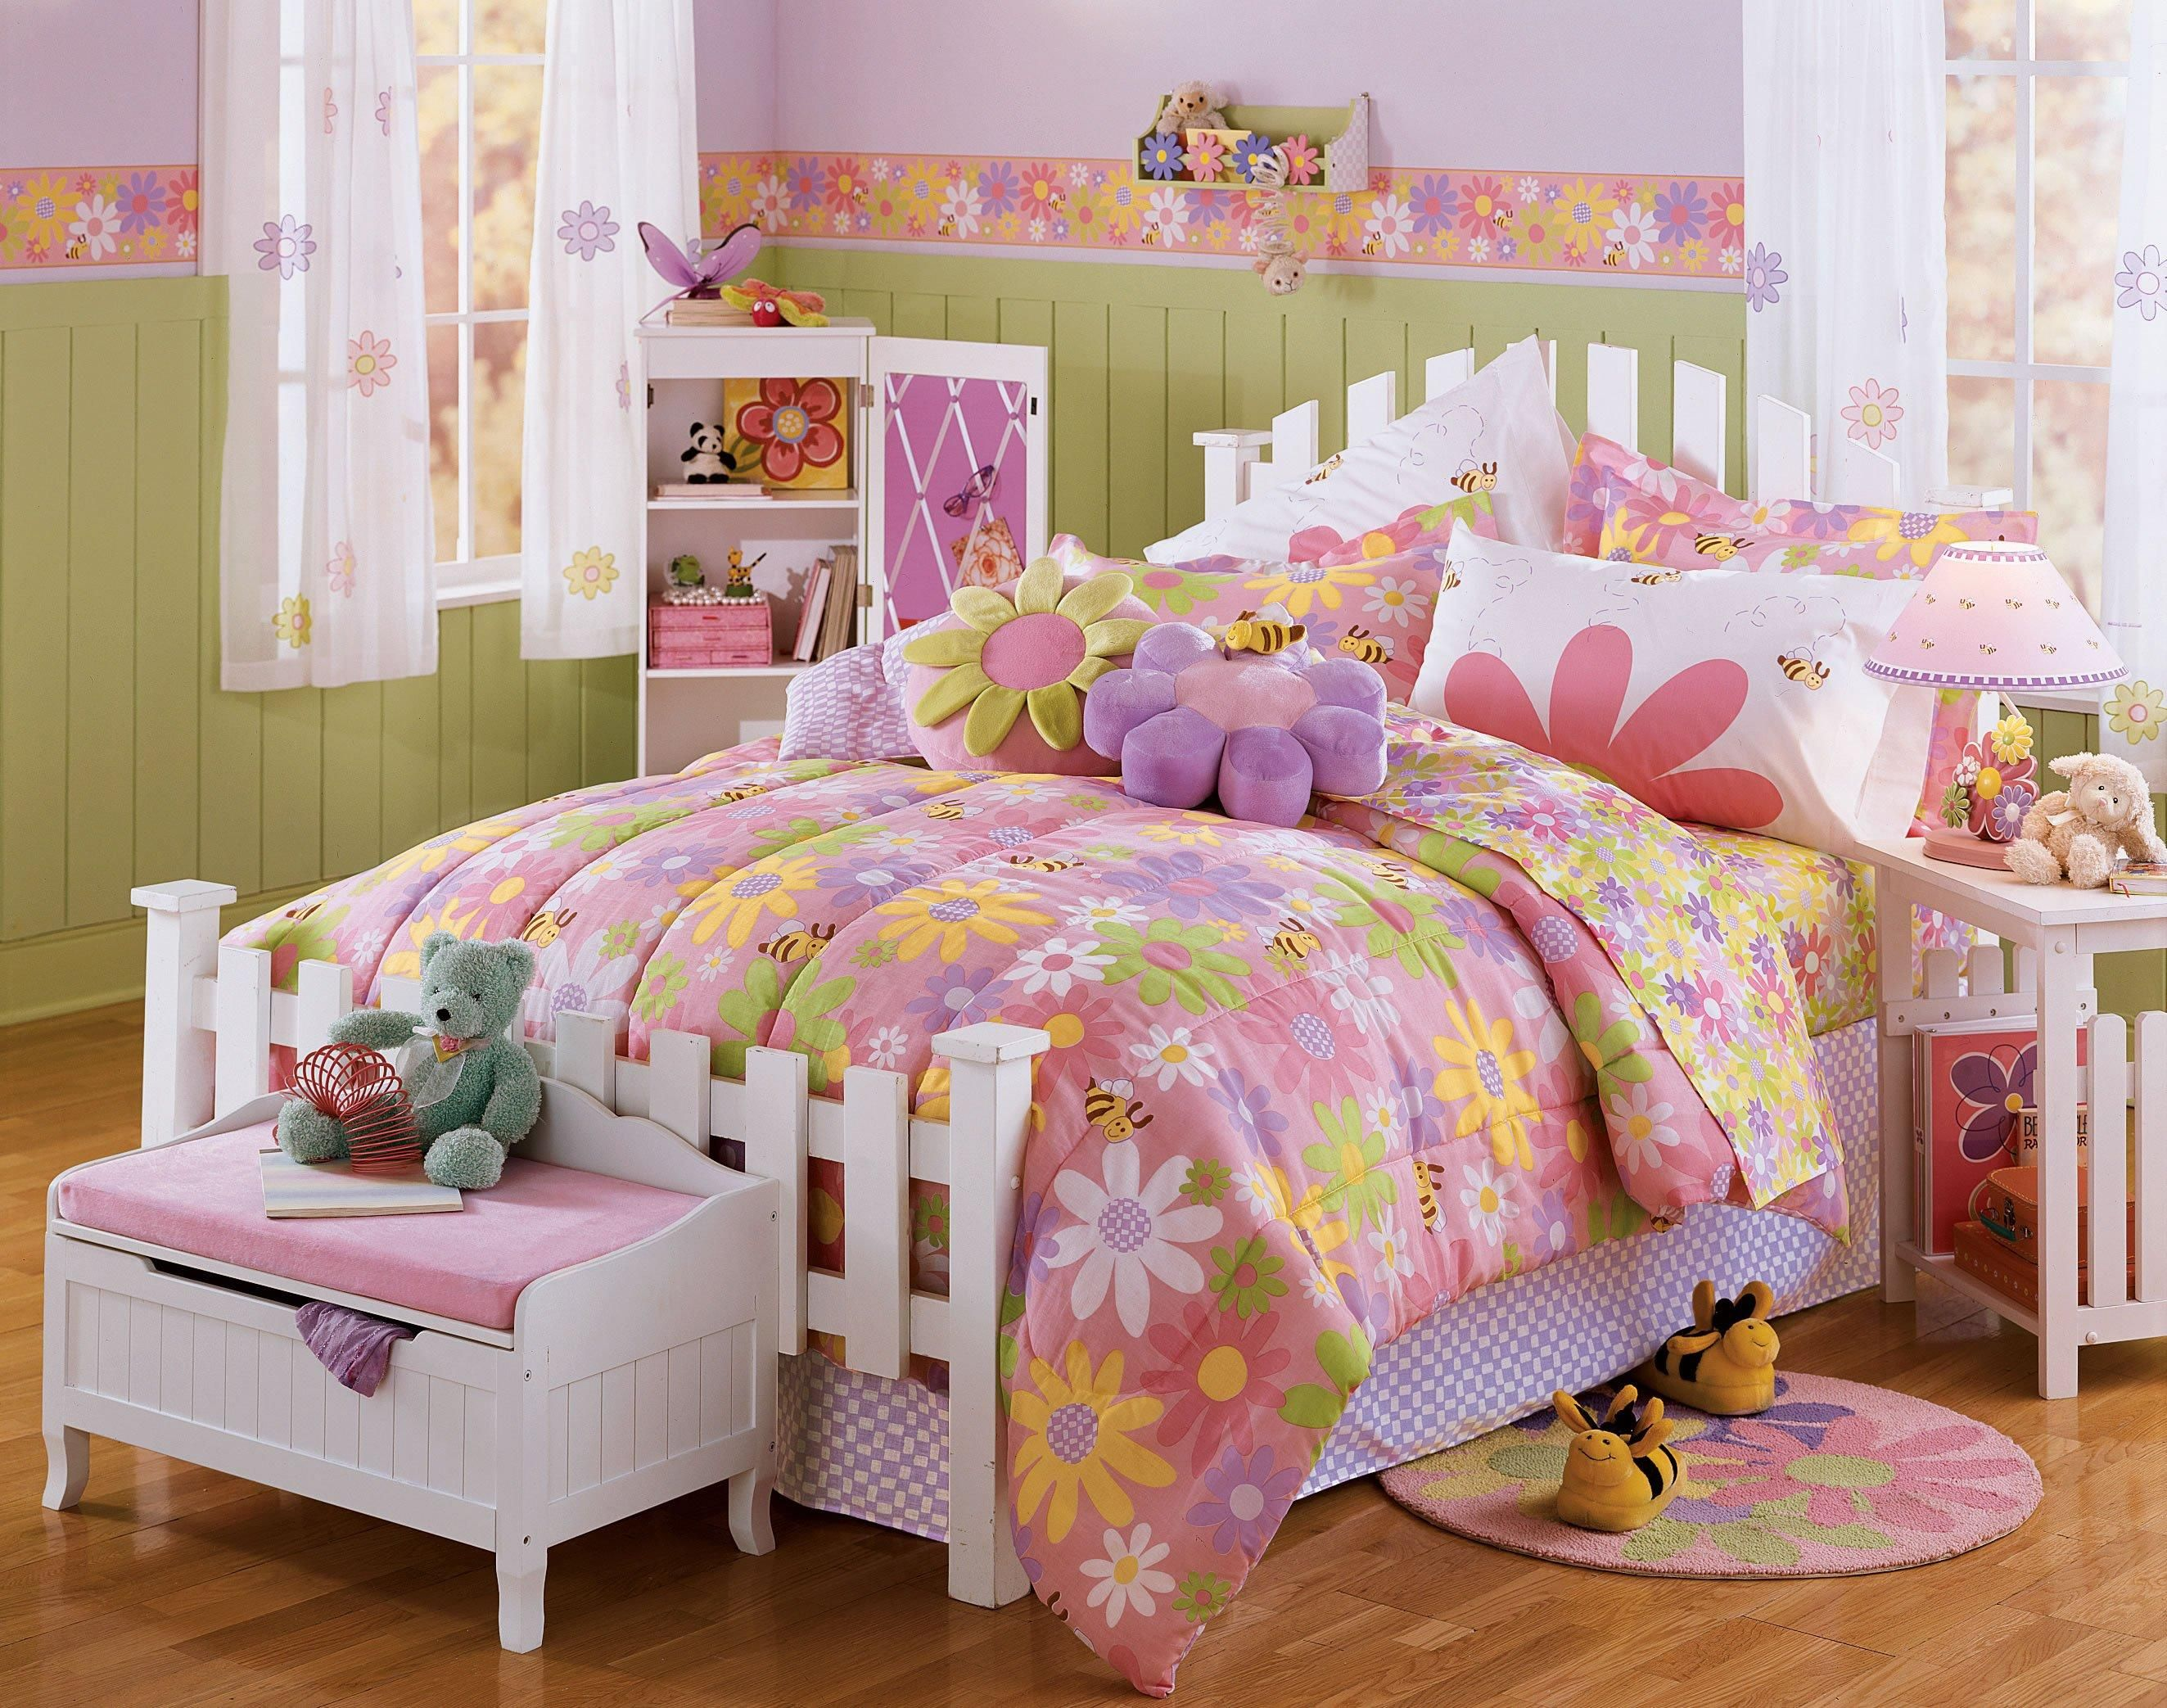 Beautiful Decoration And Design For Girls Bedroom Ideas Alluring Little Girl Bedroom Decorating Ideas Double Bed Fence Footboard Blanket Chest Pink Rug